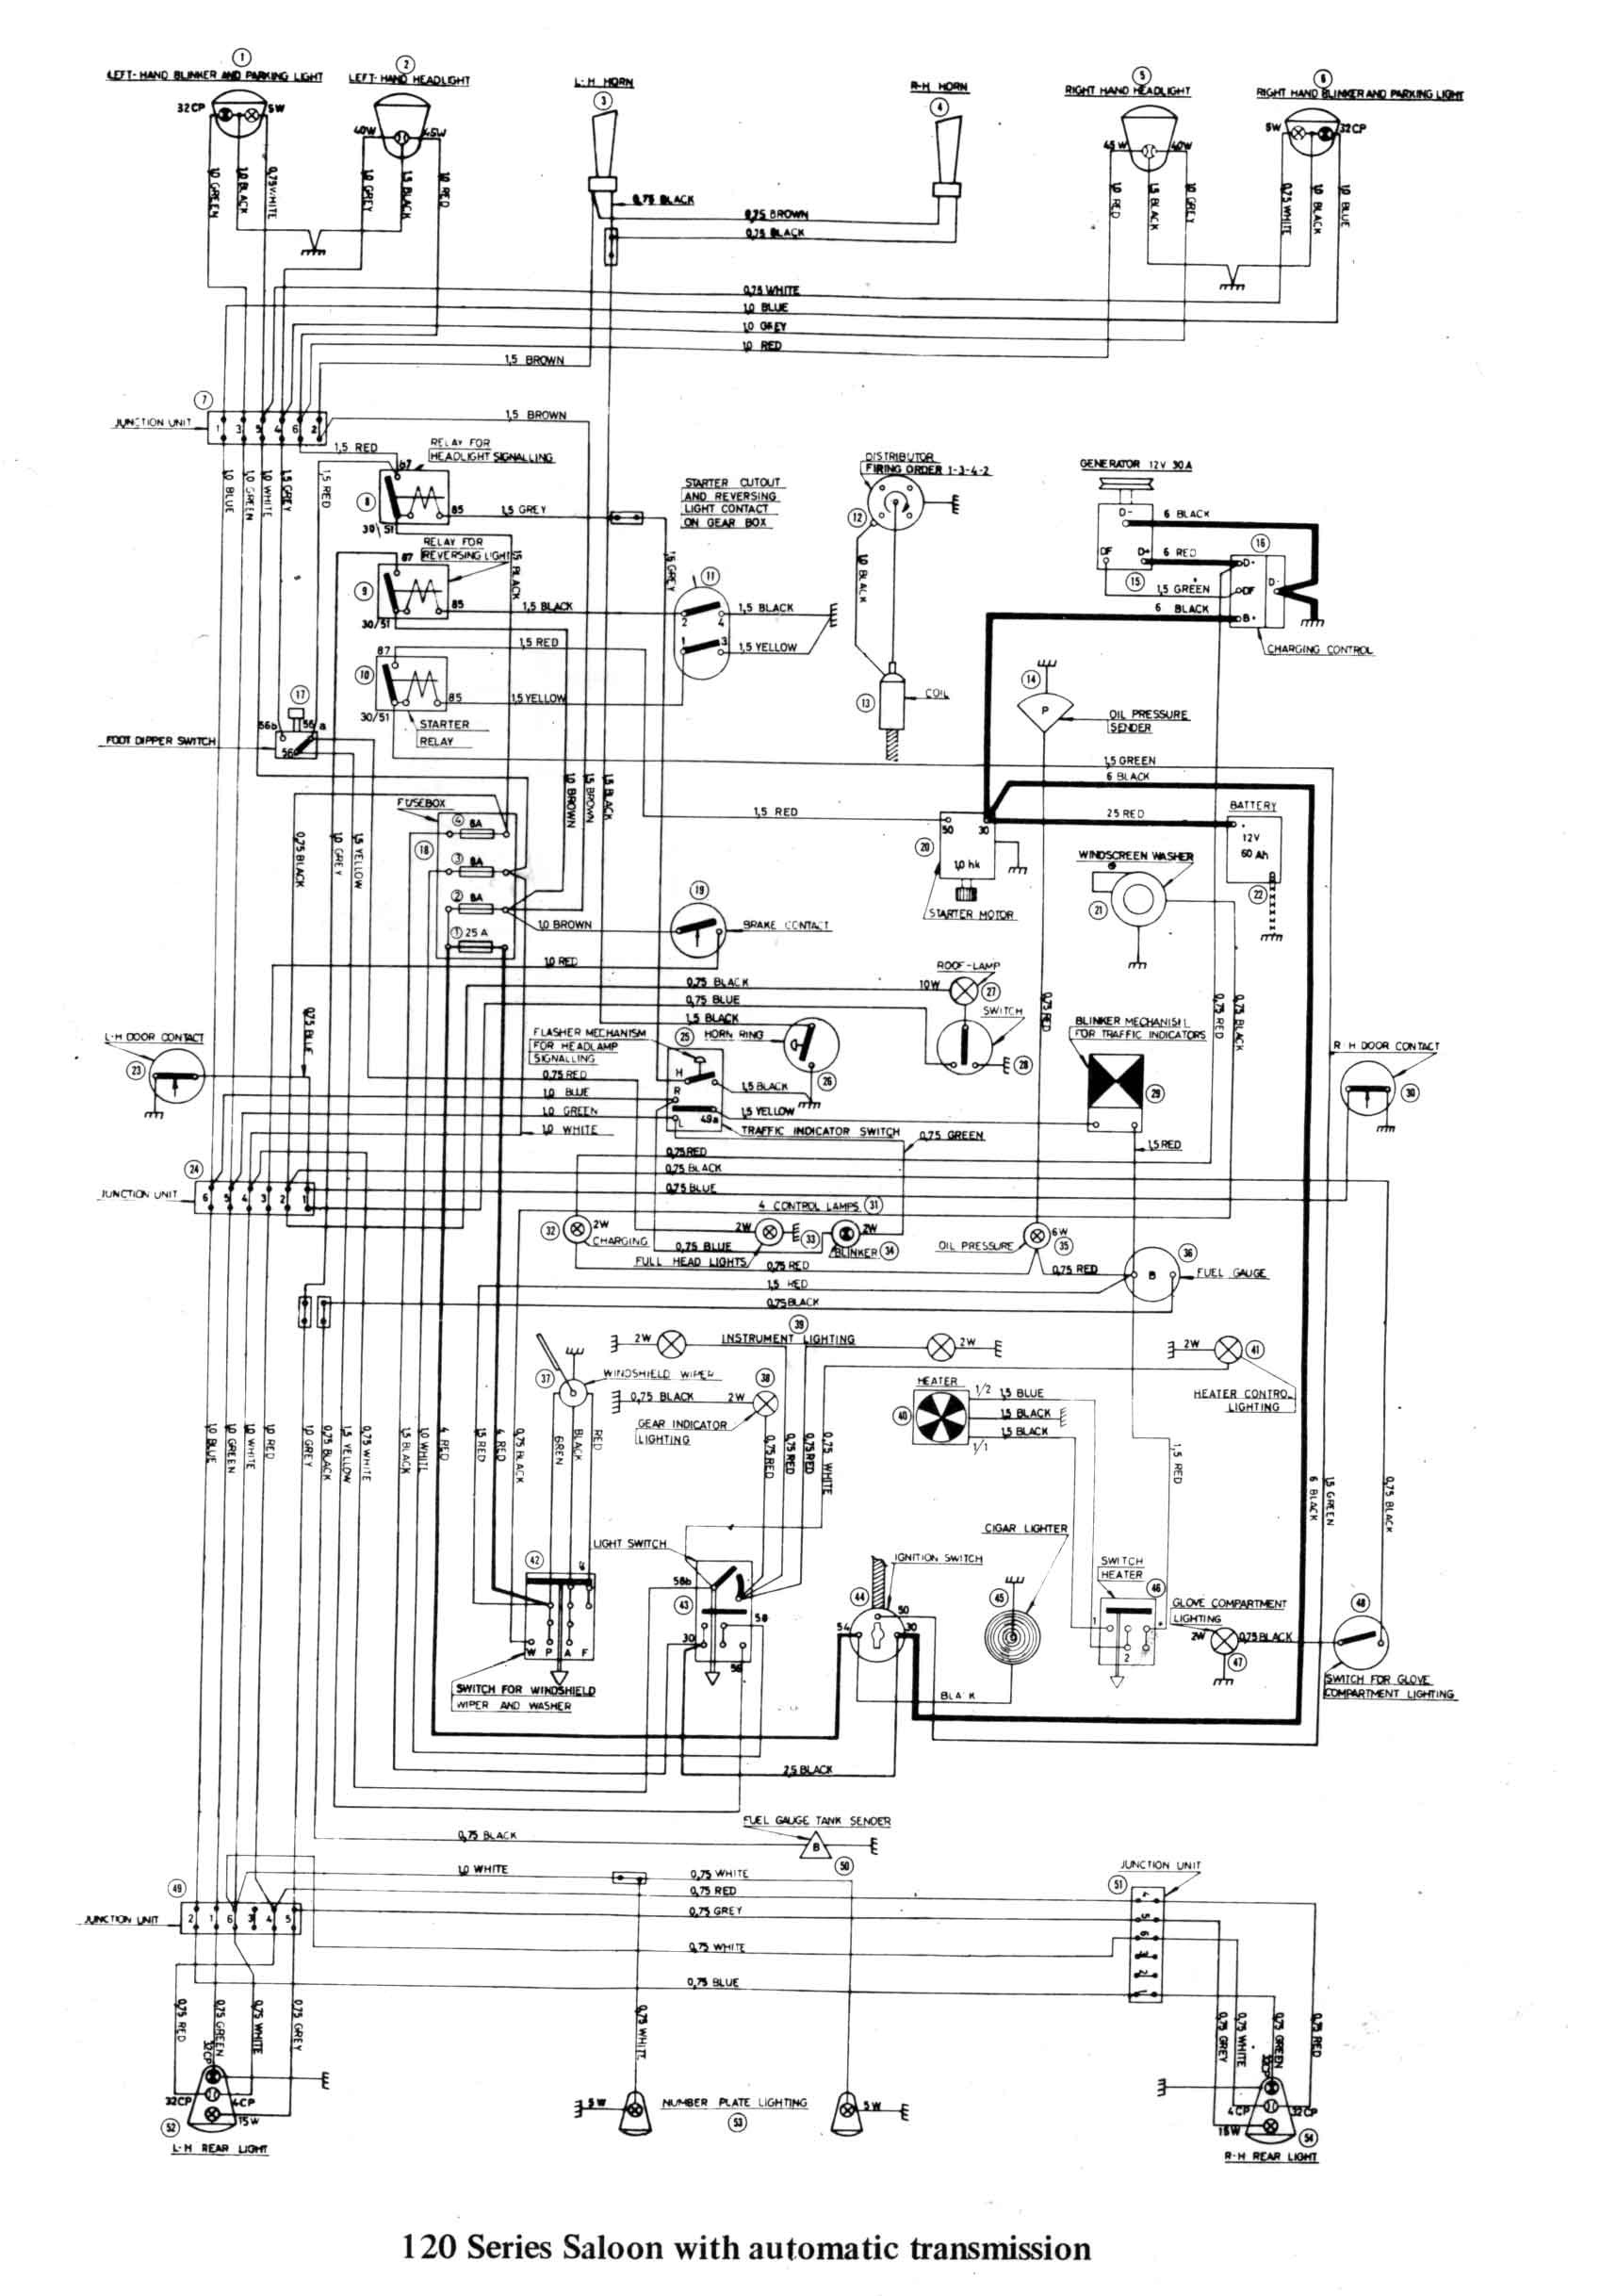 2000 Volvo S70 Fuse Box Diagram Wiring Library Scion Xb 1998 Circuit Connection U2022